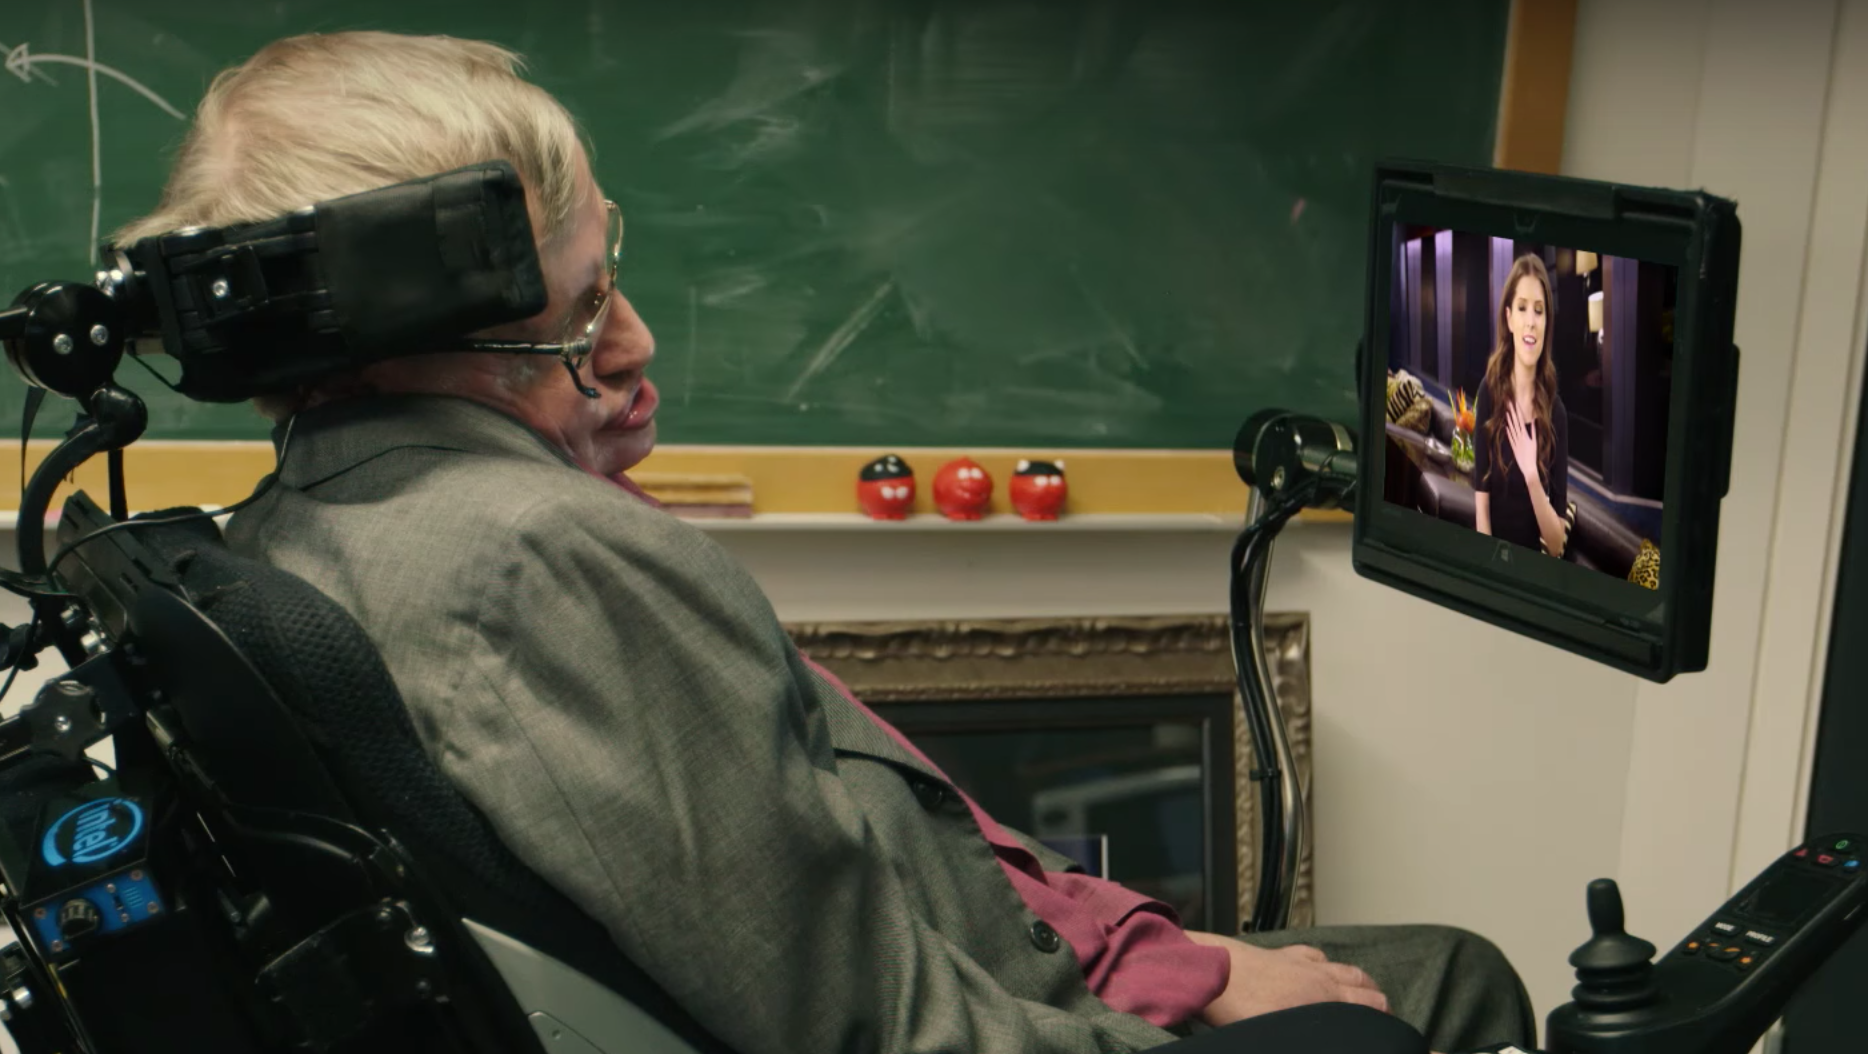 Anna Kendrick and Rebel Wilson are just a few of the celebs vying to be Stephen Hawking's new voice in this hilarious video